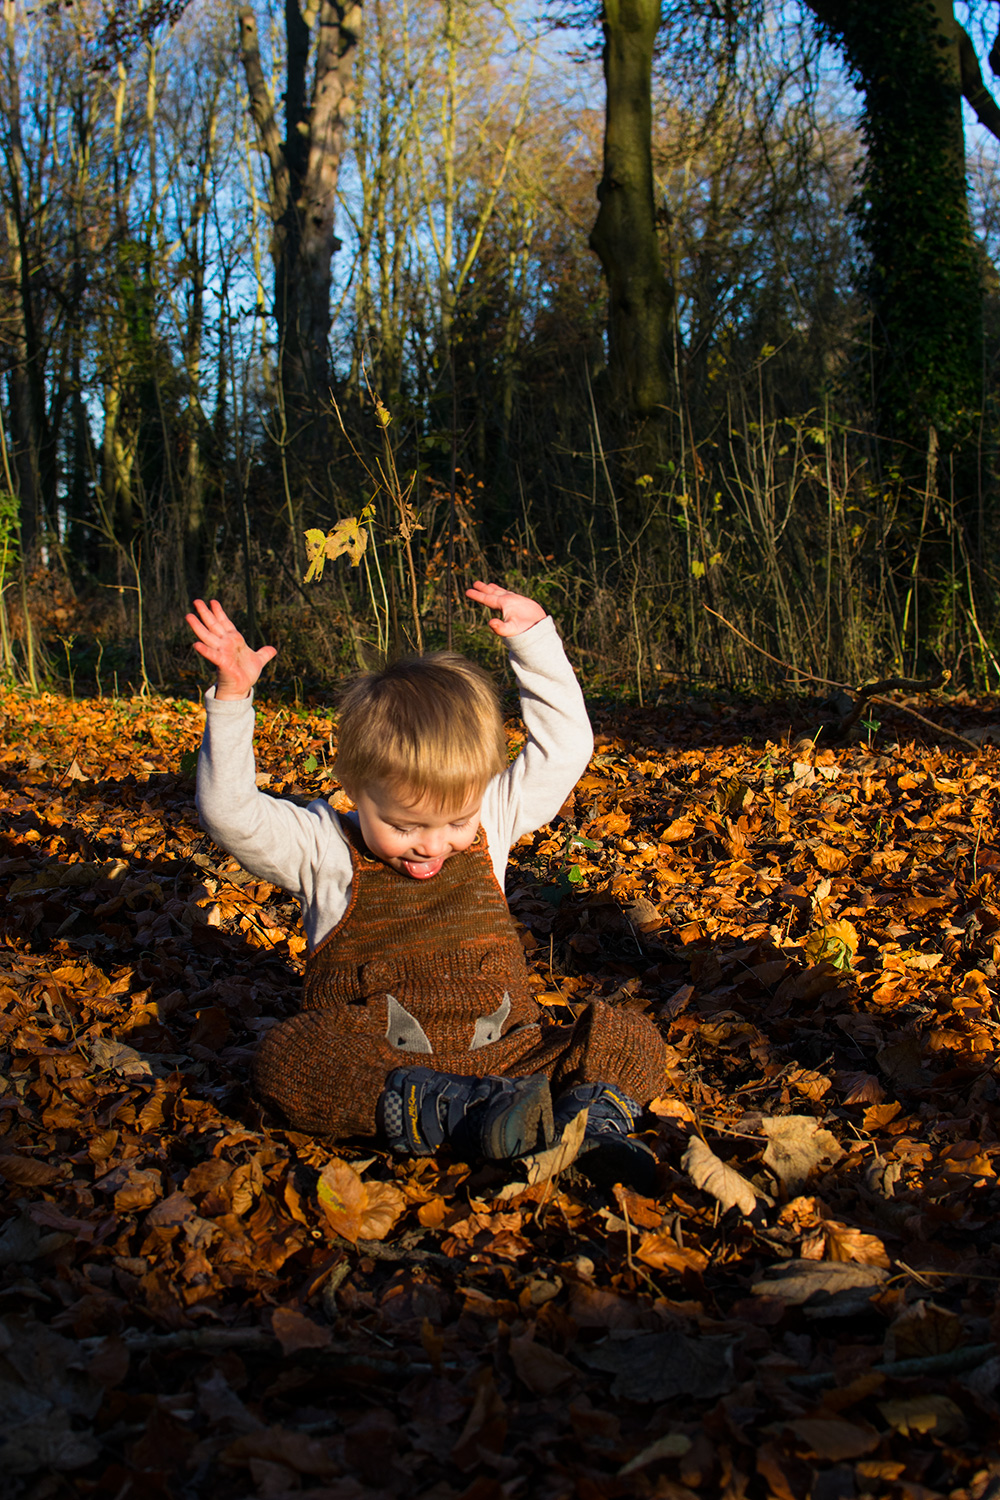 Motherhood — The Ordinary Moments #14; Toddler boy wearing Next fox vintage dungarees playing in the leaves at the park in Autumn